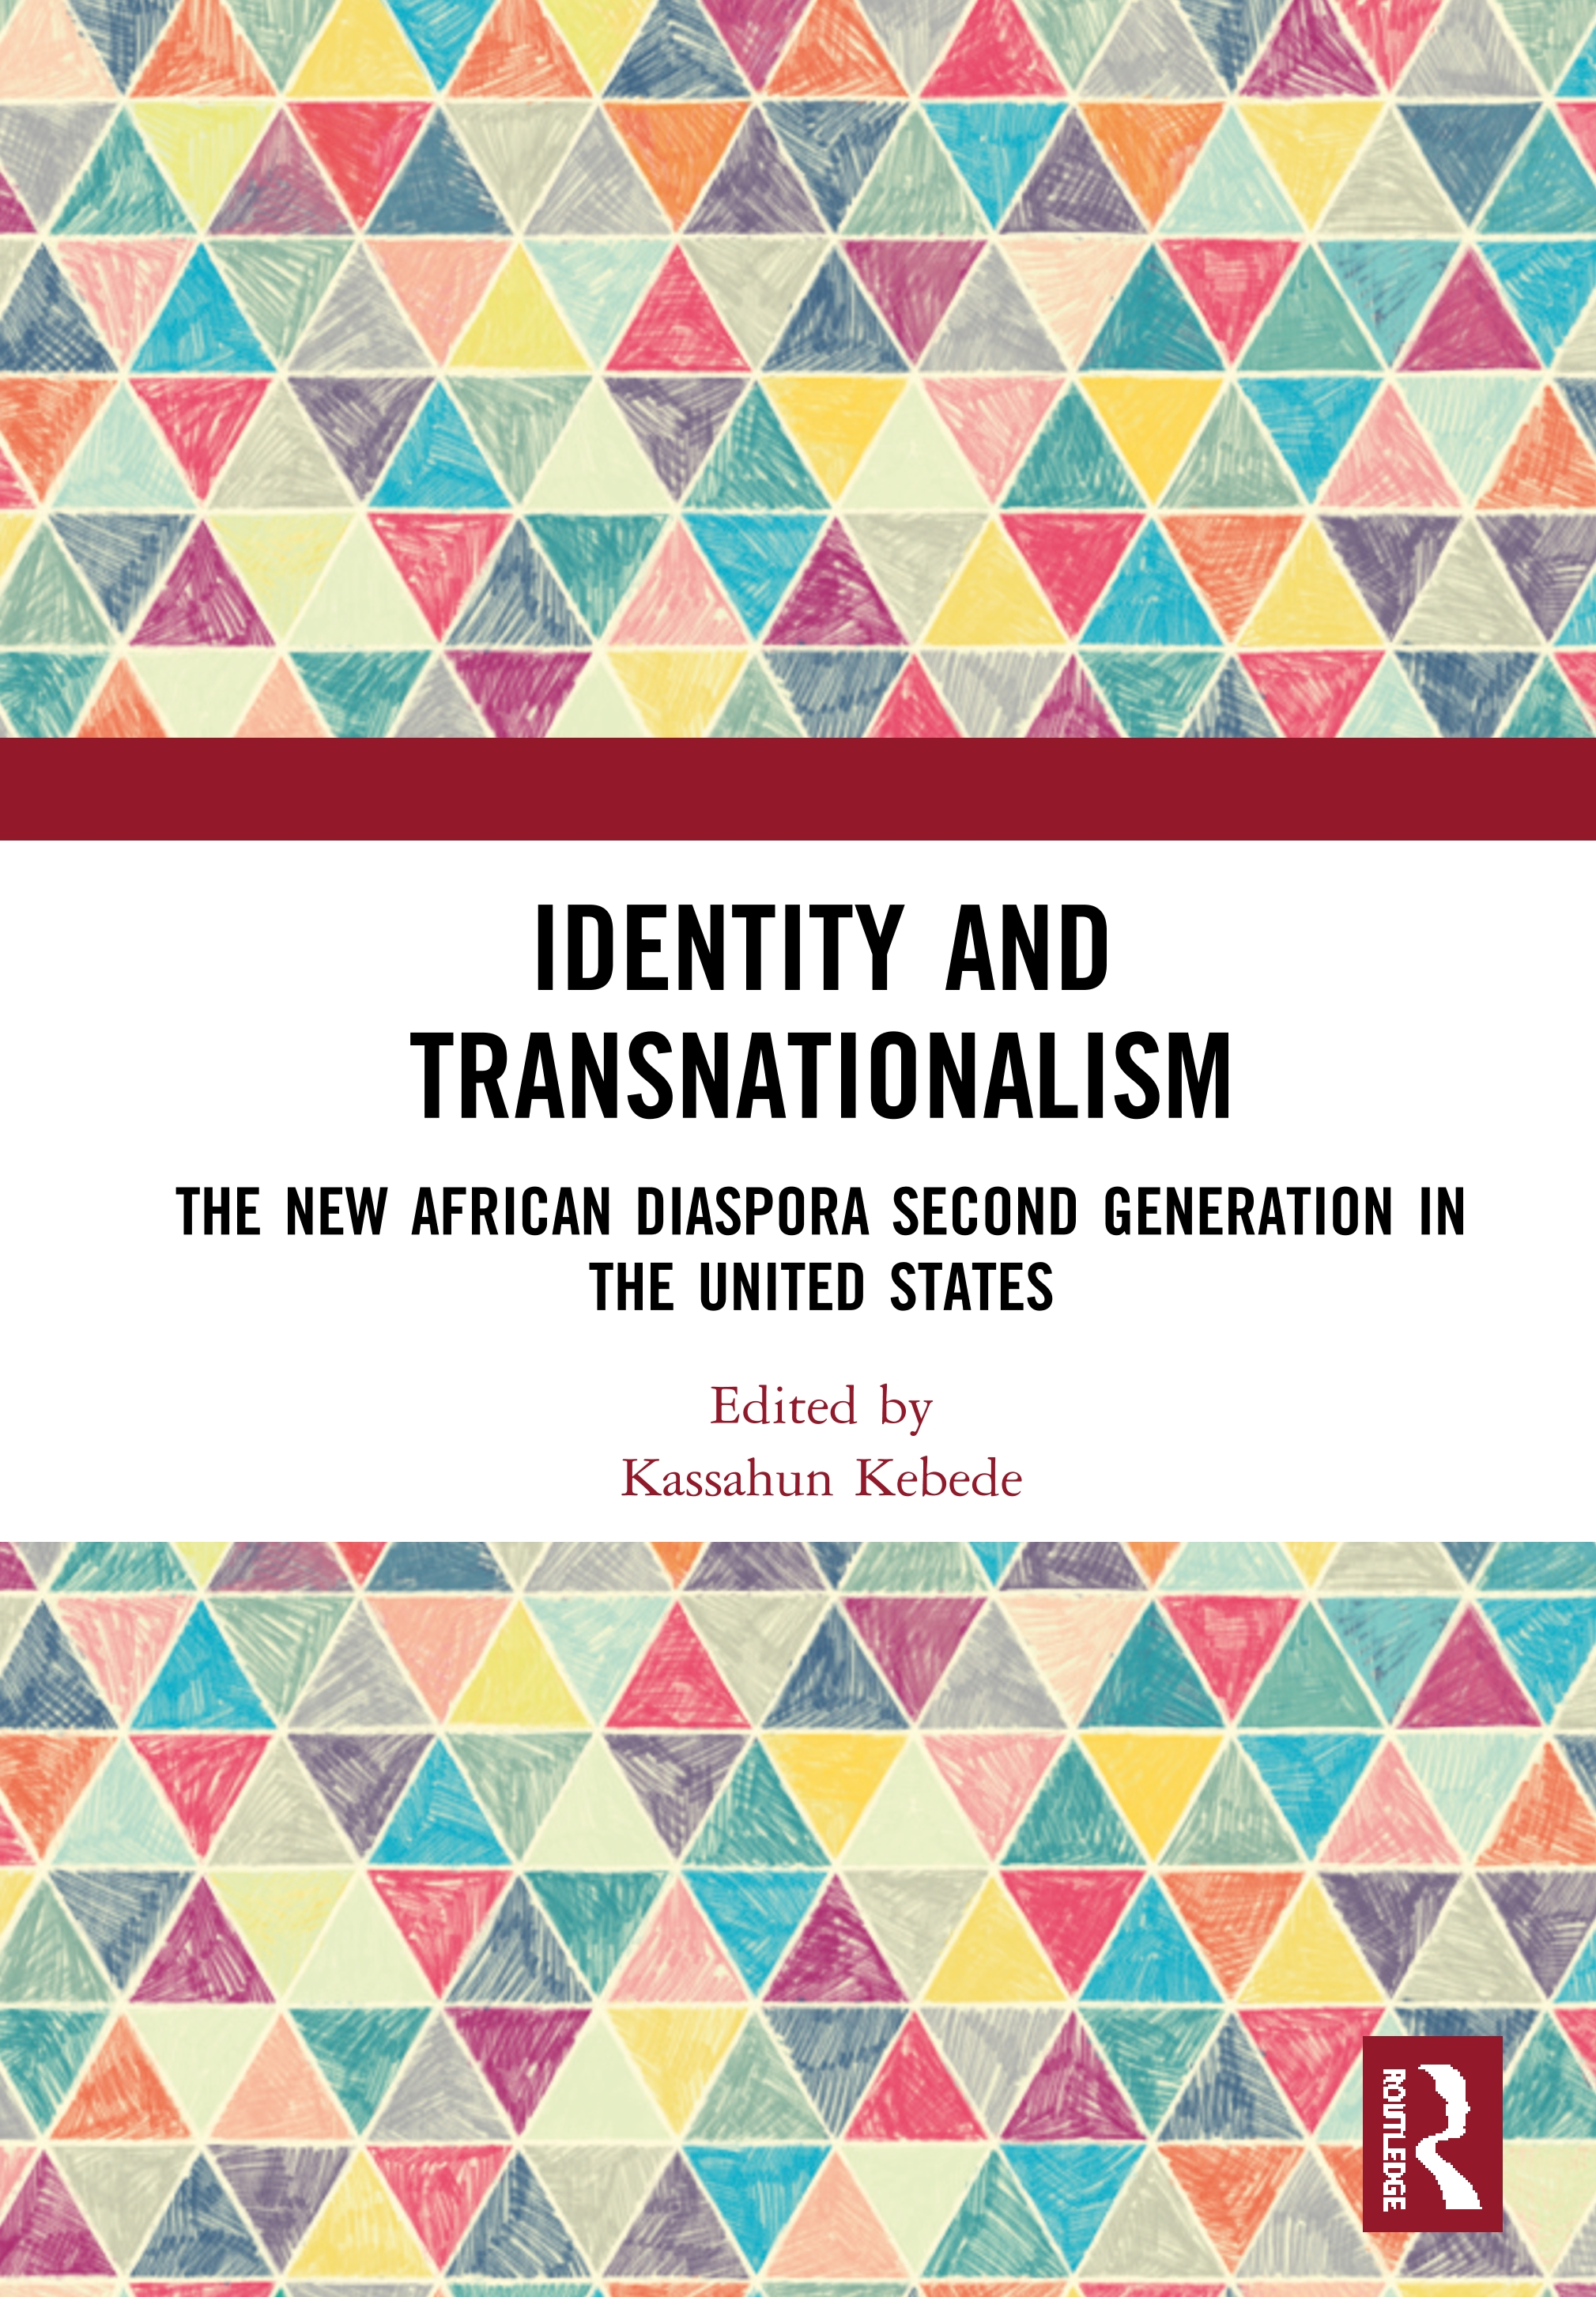 Identity and Transnationalism: The New African Diaspora Second Generation in the United States book cover